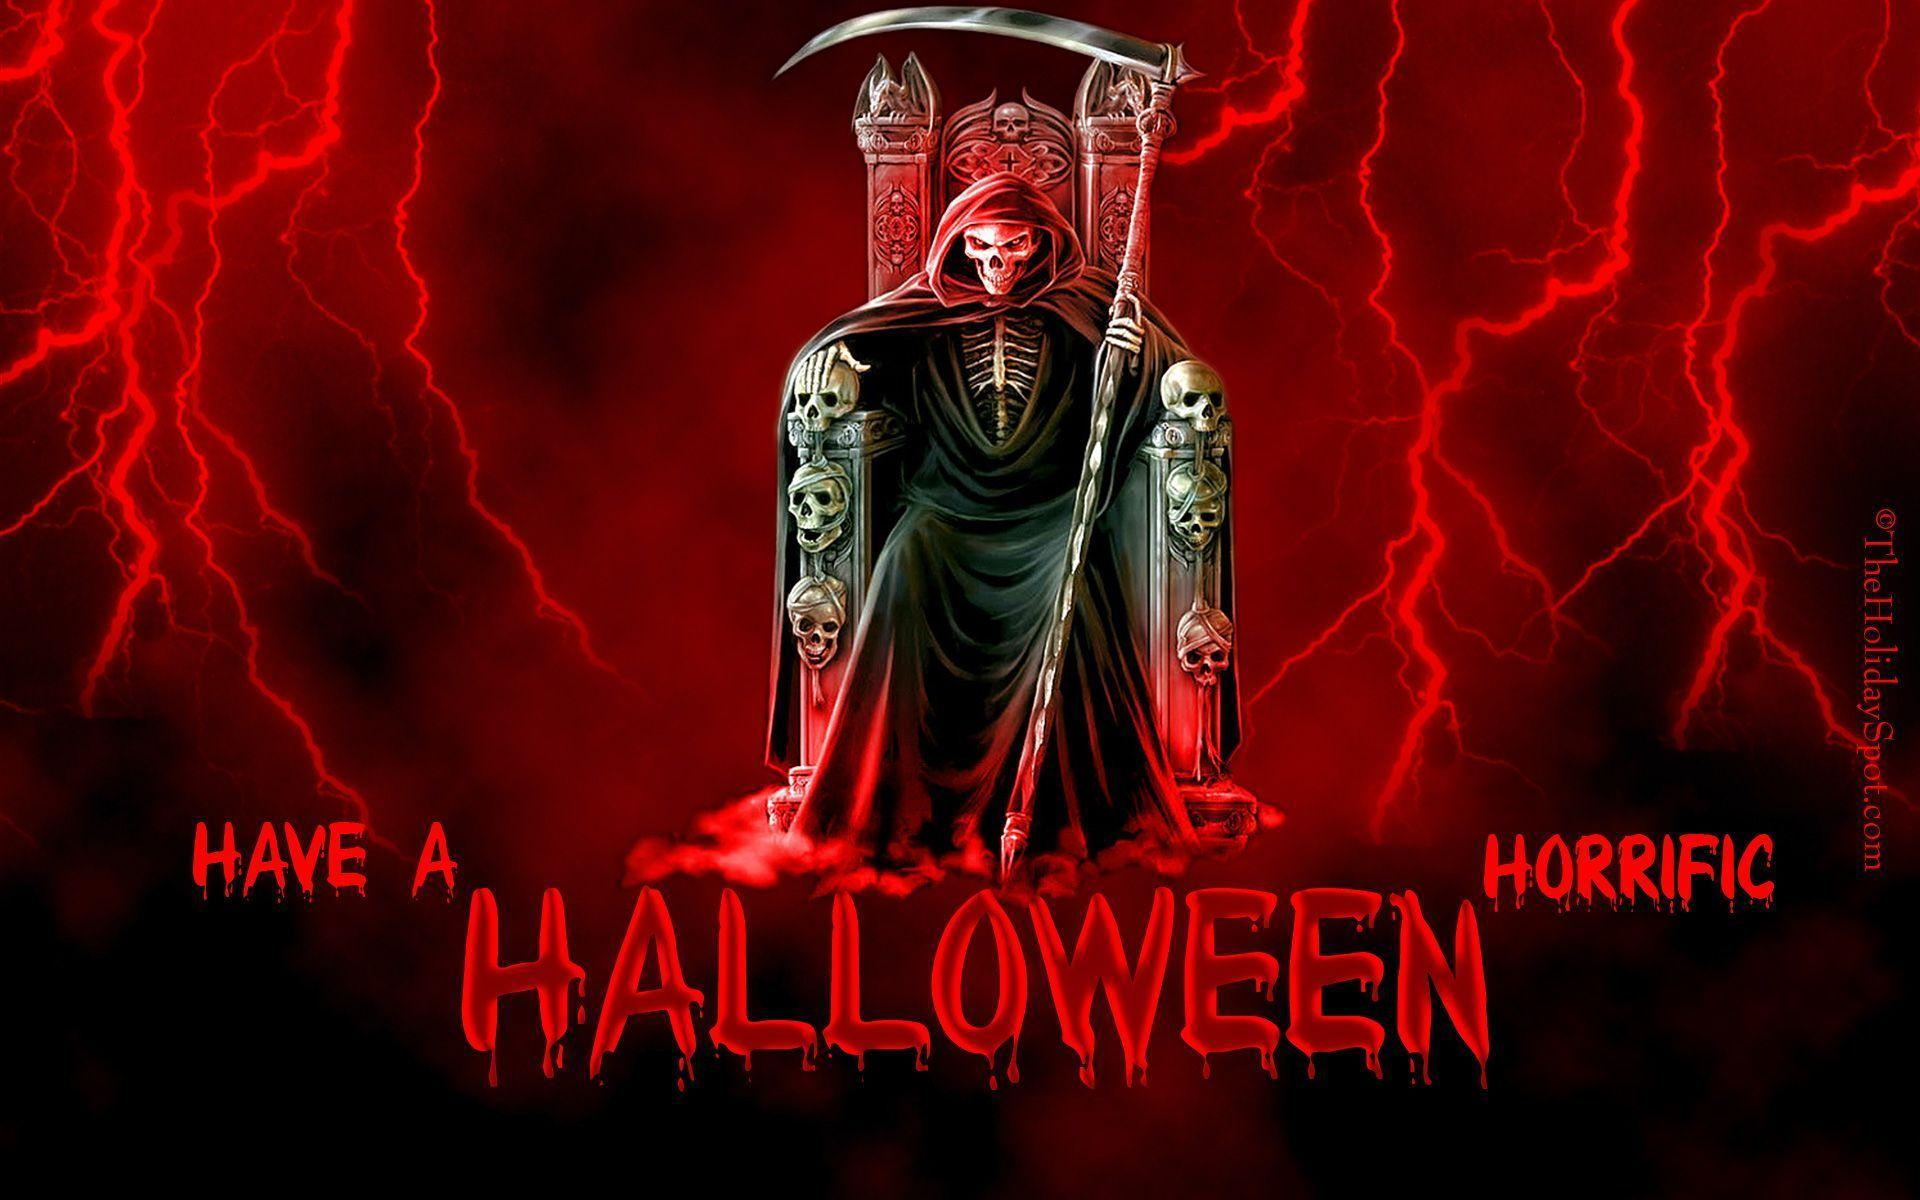 Scary Happy Halloween Wallpapers - Wallpaper Cave